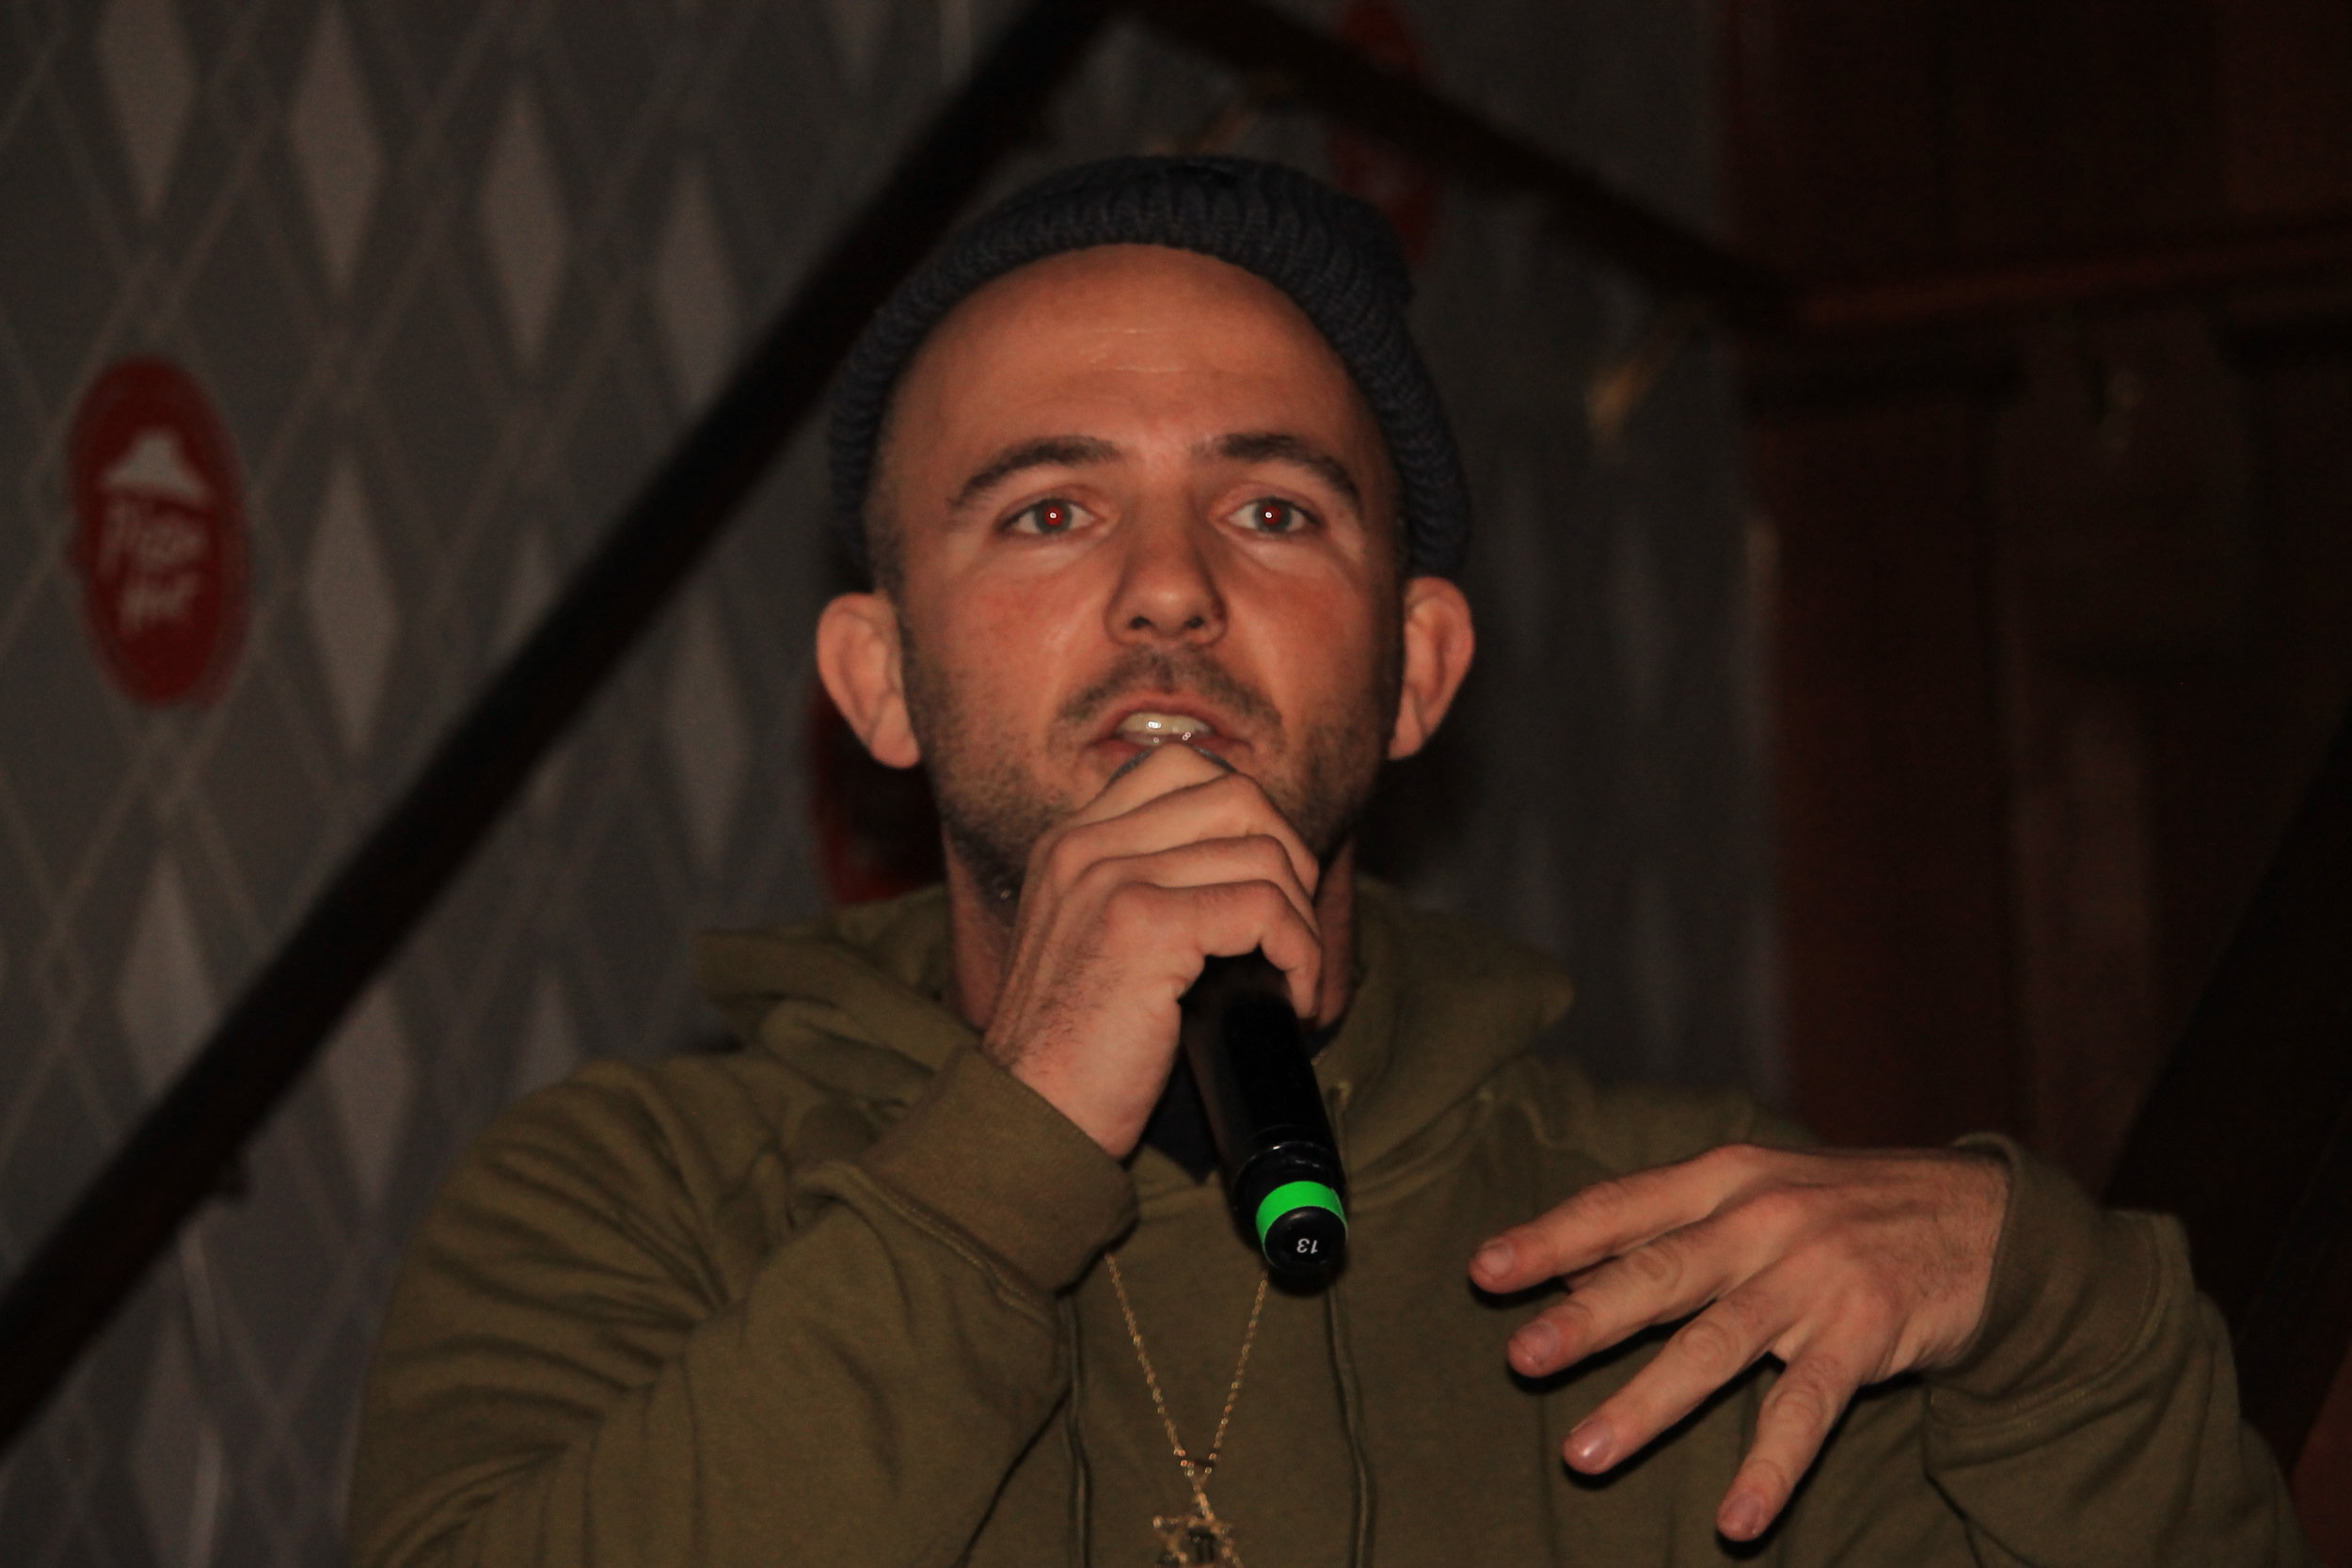 We were honored to have Jewish rapper Kosha Dillz with us for our open mic/karaoke hybrid event!